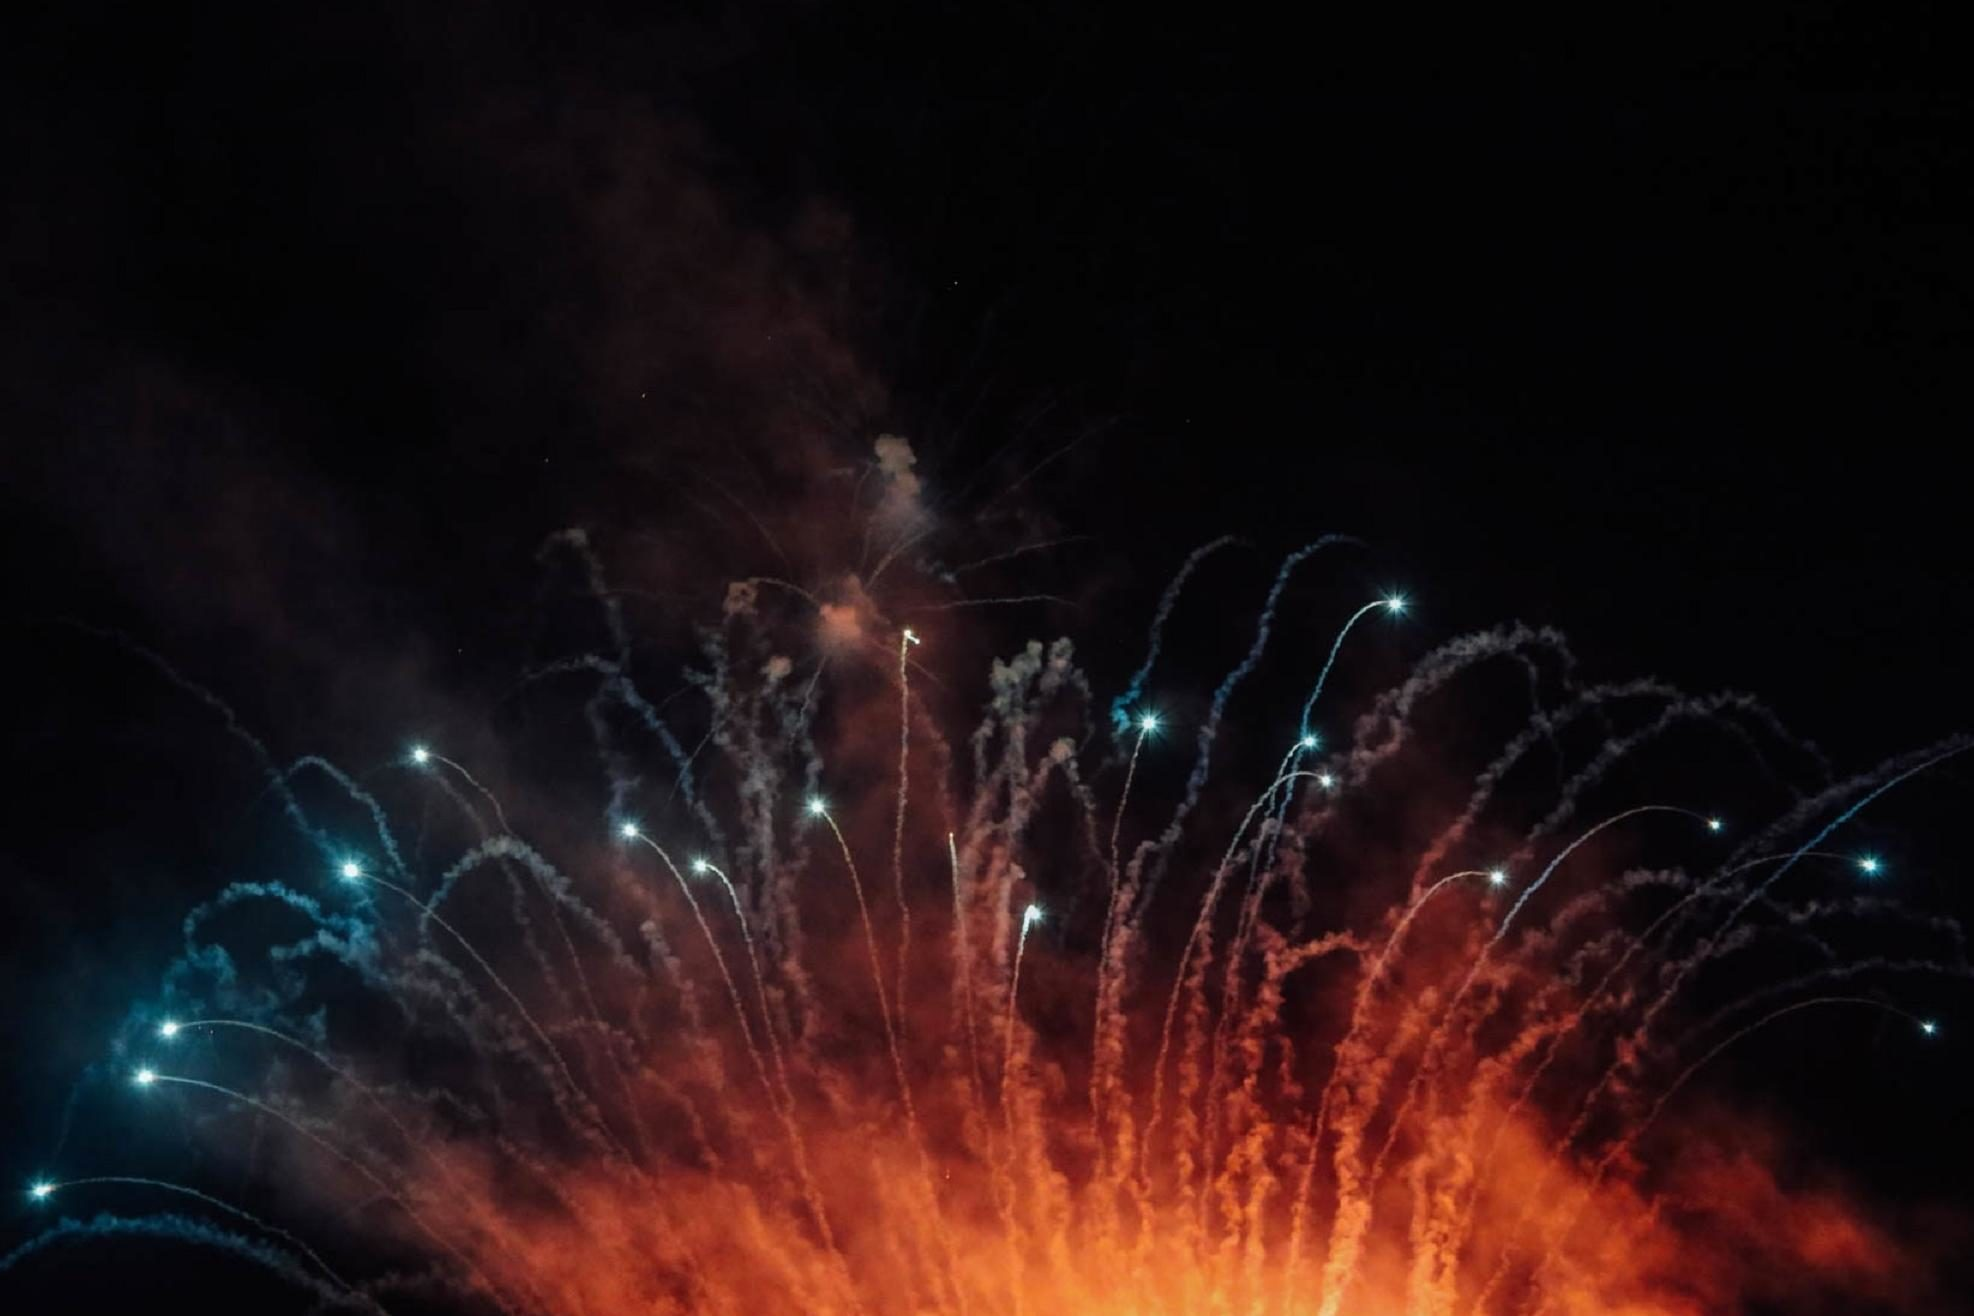 Free picture: flame, fireworks, explosion, festival, smoke, energy